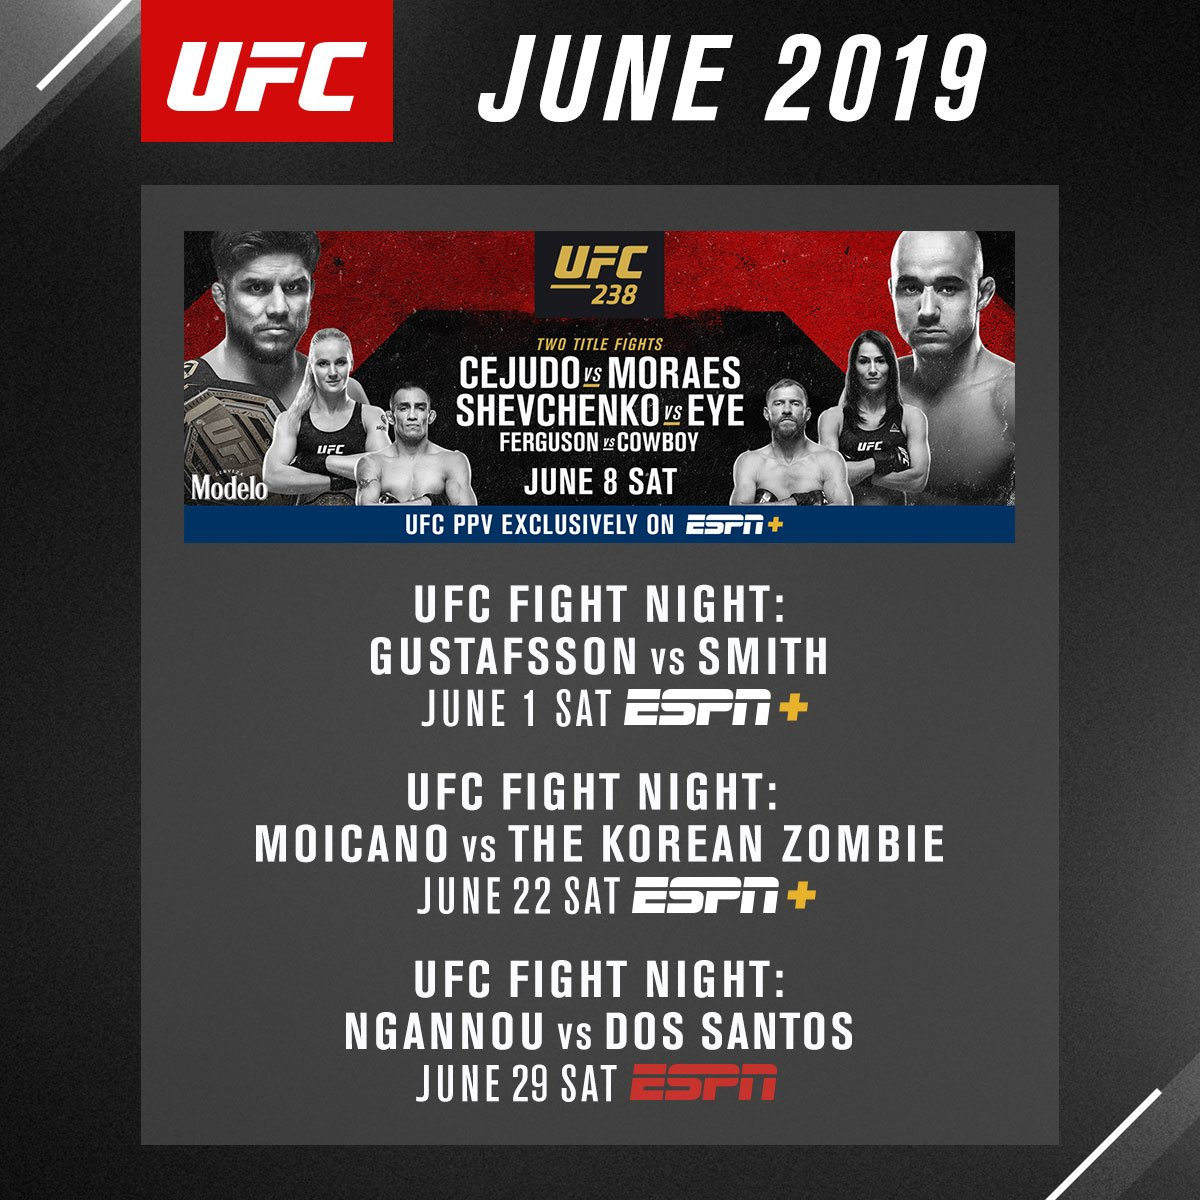 Here's what's coming up in June. Kicking off with this weekend at #UFCStockholm.   Mark your calendars ➡️ https://t.co/mTU0TiRn9x https://t.co/3P4HIxubXI #ufc #mma